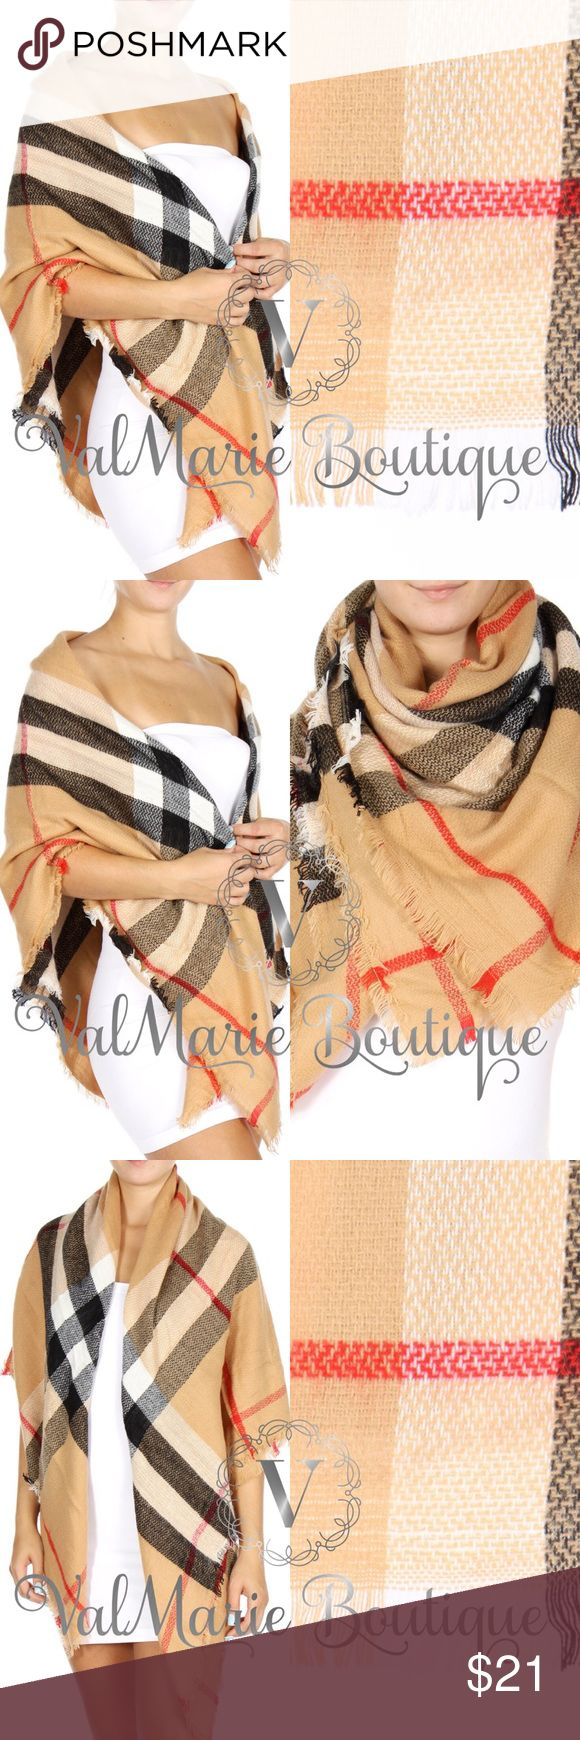 Oversized Plaid Camel Scarf - big stocking stuffer Get this MEGA SOFT luxurious oversized Plaid check scarf now! Feels so elegant on your skin. Wear it as a scarf, shawl or wrap coverup. Perfect for Fall or Winter! One size fits all! ValMarie Accessories Scarves & Wraps